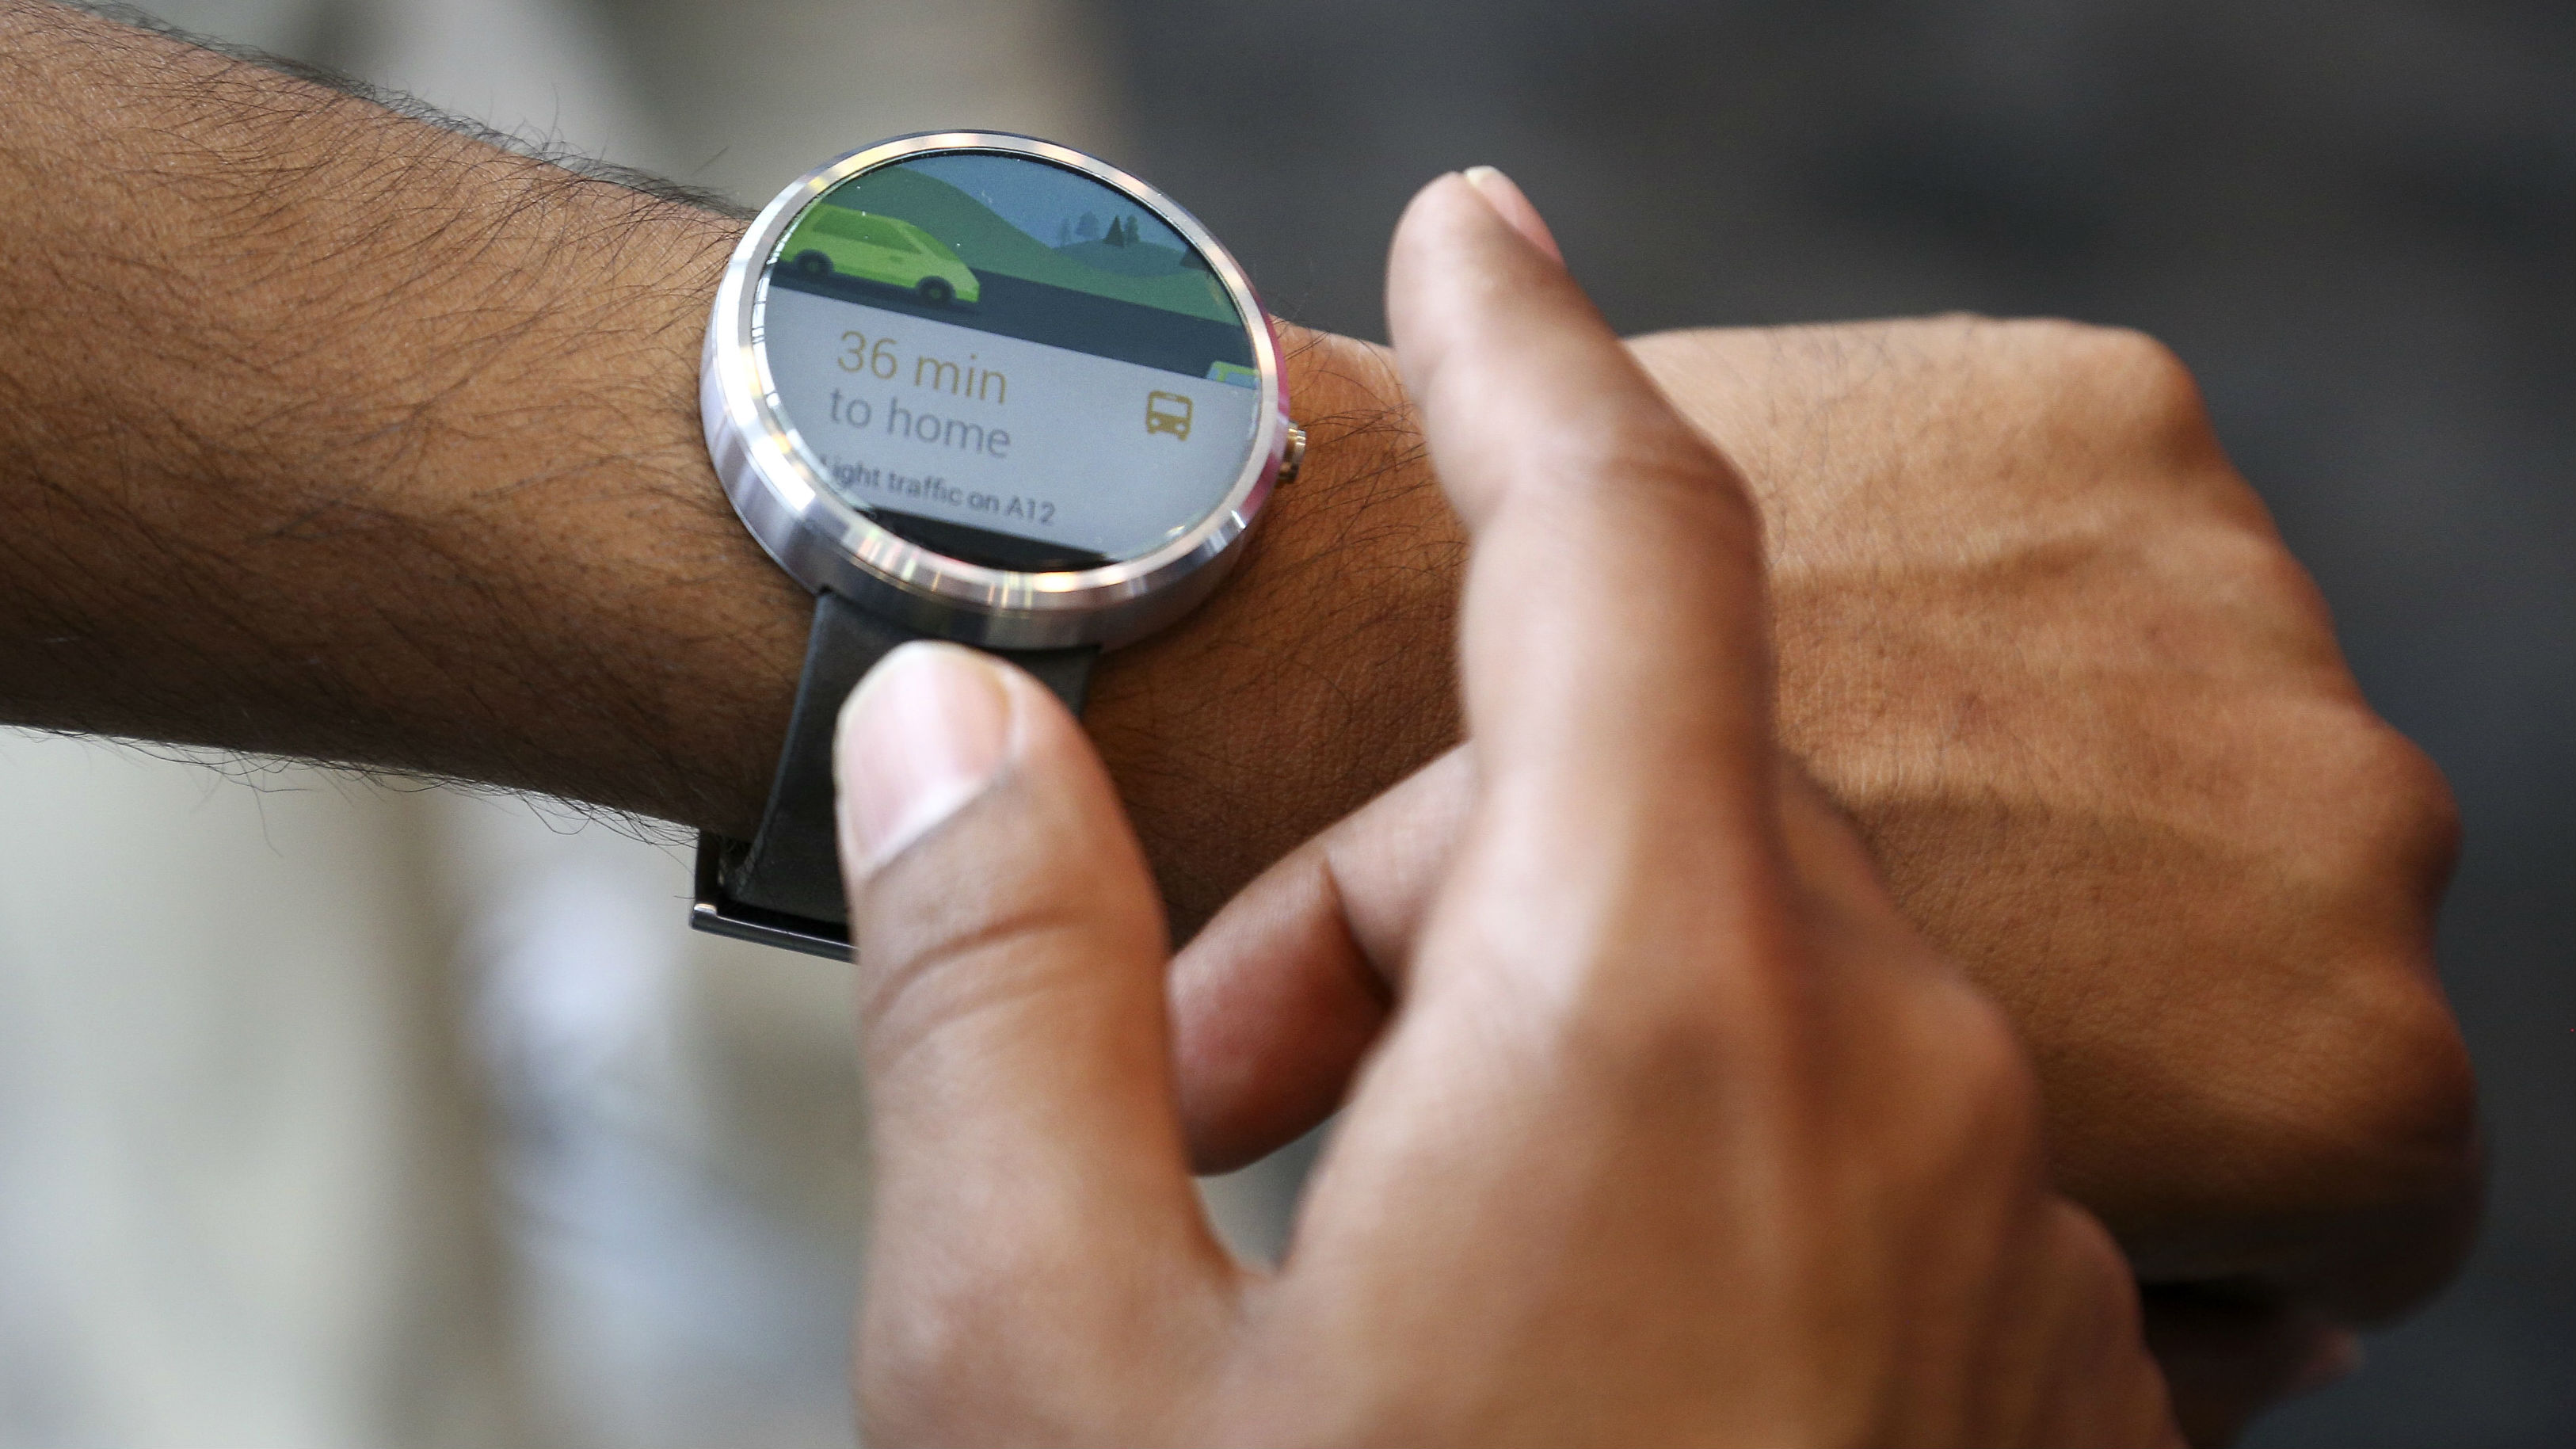 A Google employee demonstrates the features of the Moto smartwatch at the Google I/O developers conference in San Francisco June 25, 2014. Google Inc's Android software is coming to cars, televisions and watches this year, as the Internet search giant races against Apple Inc and other tech companies to extend its business into a rapidly broadening field of Internet-connected devices. REUTERS/Elijah Nouvelage